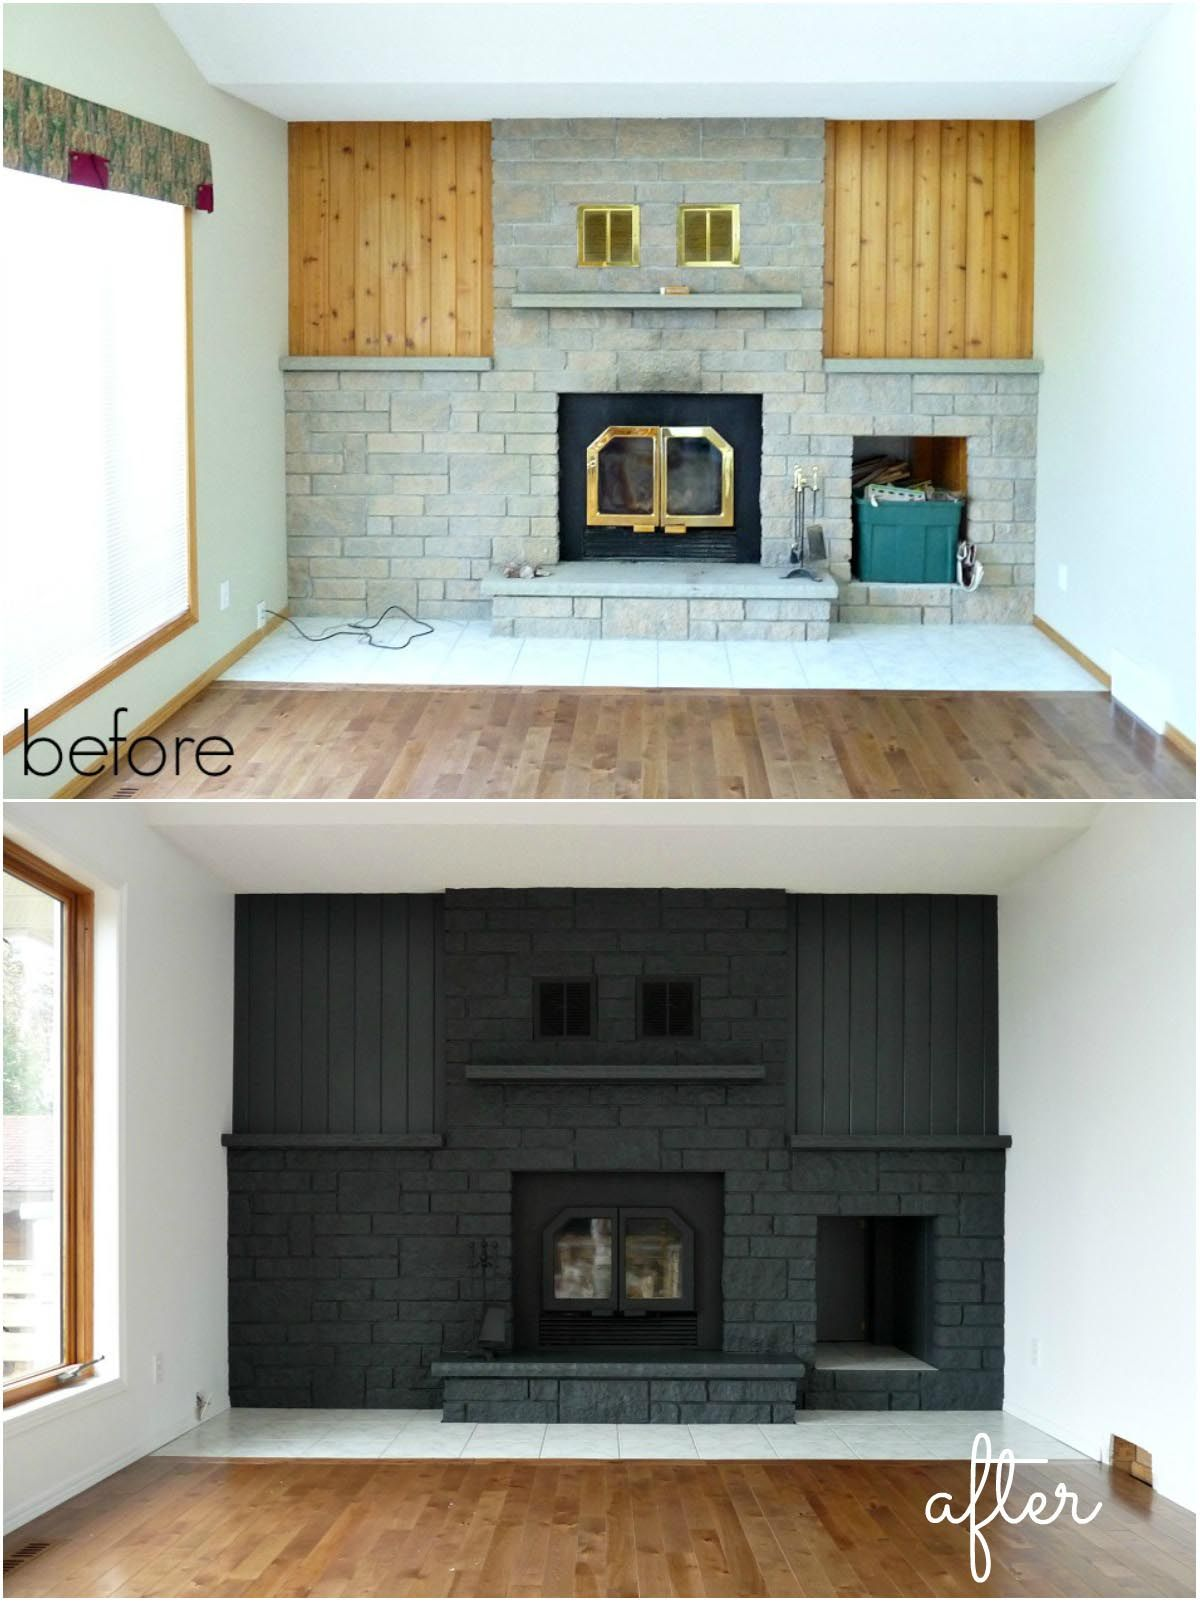 Painted brick fireplace makeover What a statement this makes